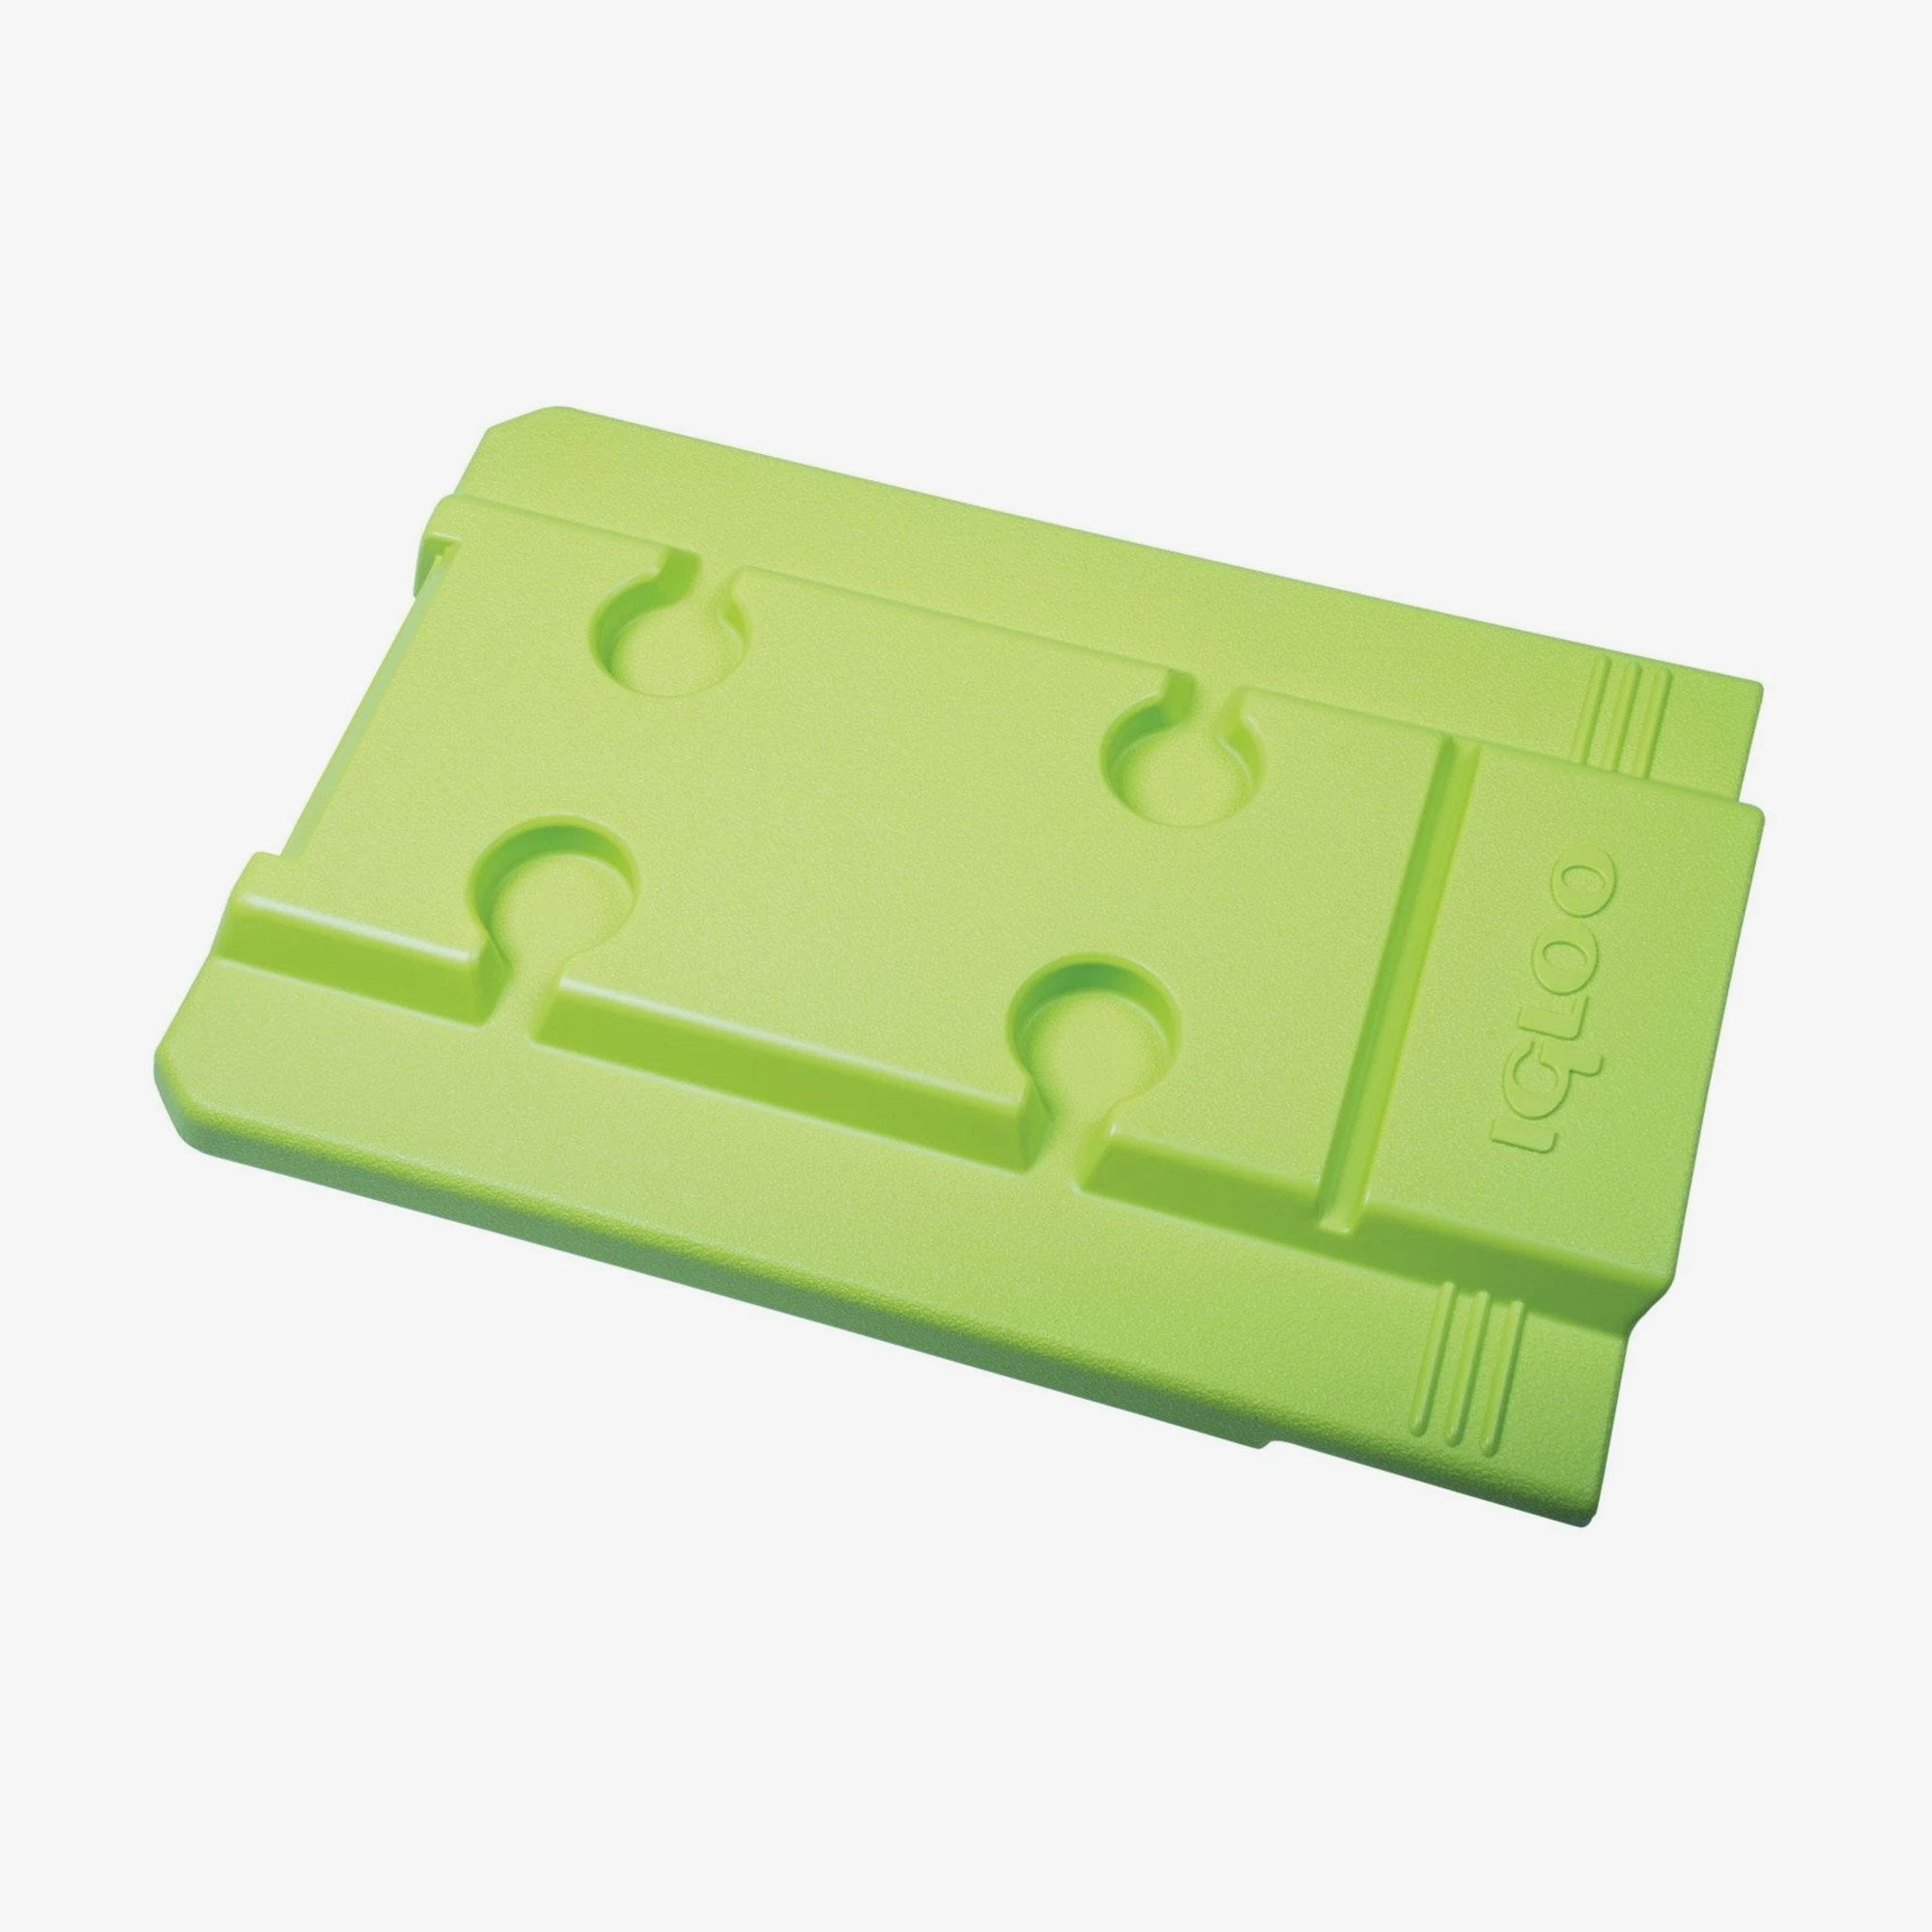 Large View | Lid For Trailmate Coolers in Acid Green at Igloo Replacement Parts